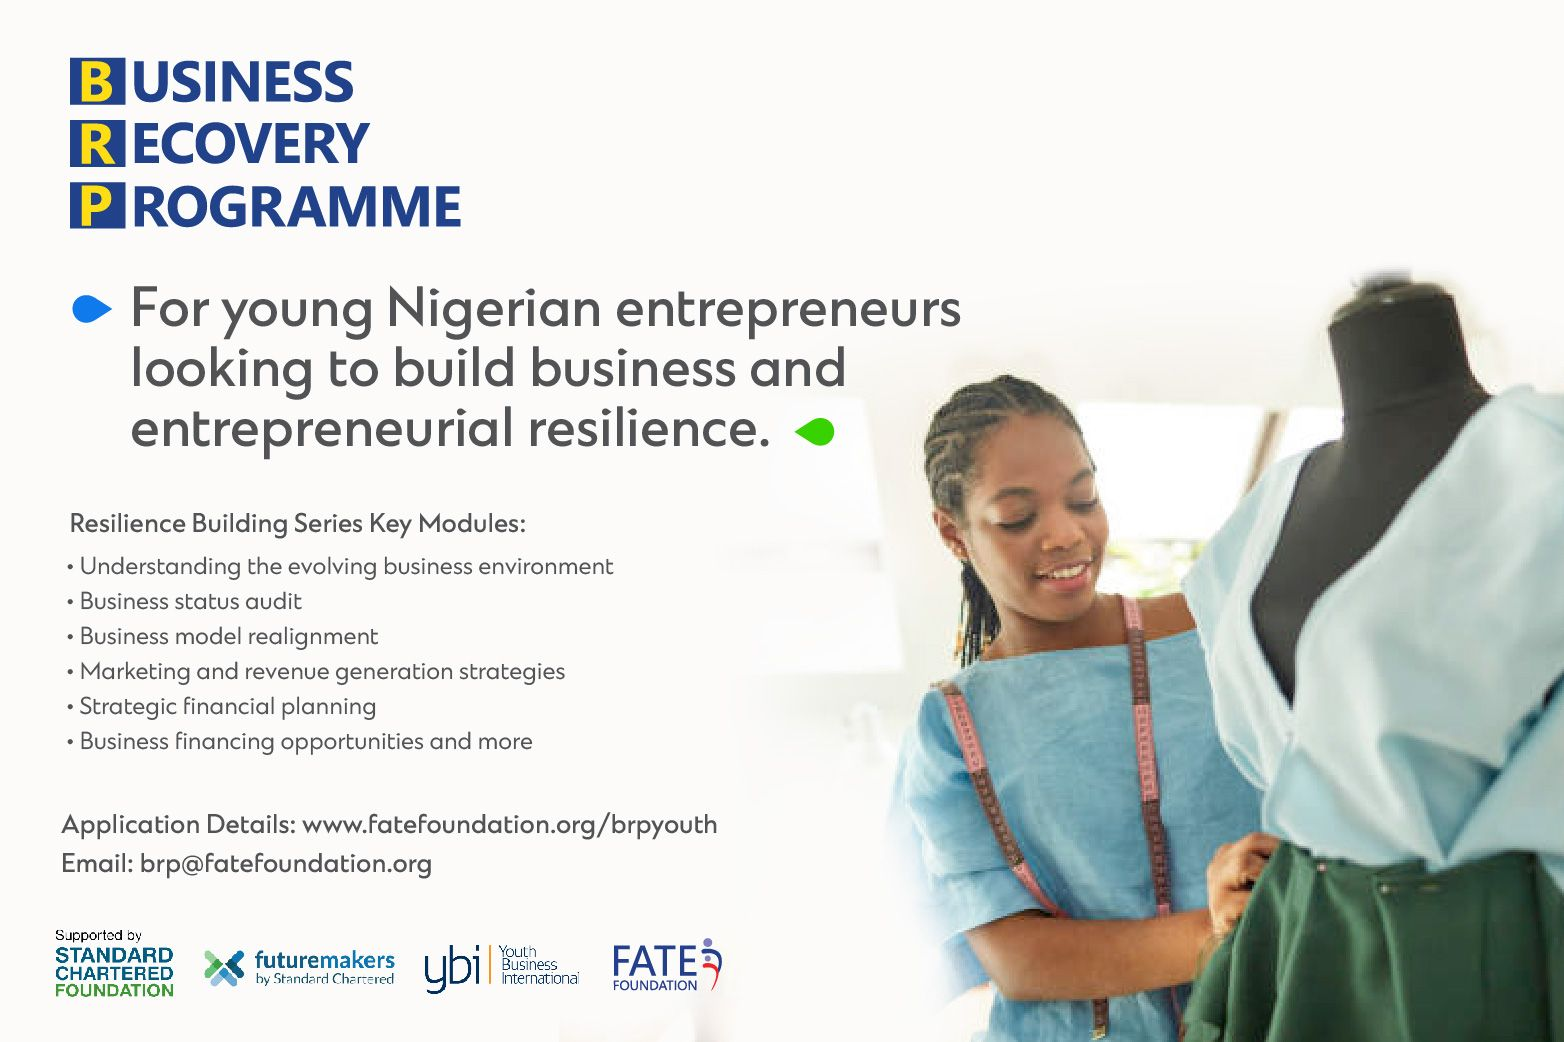 Apply for Business Recovery Programme (Youth) through FATE Foundation Application 2021 Grant